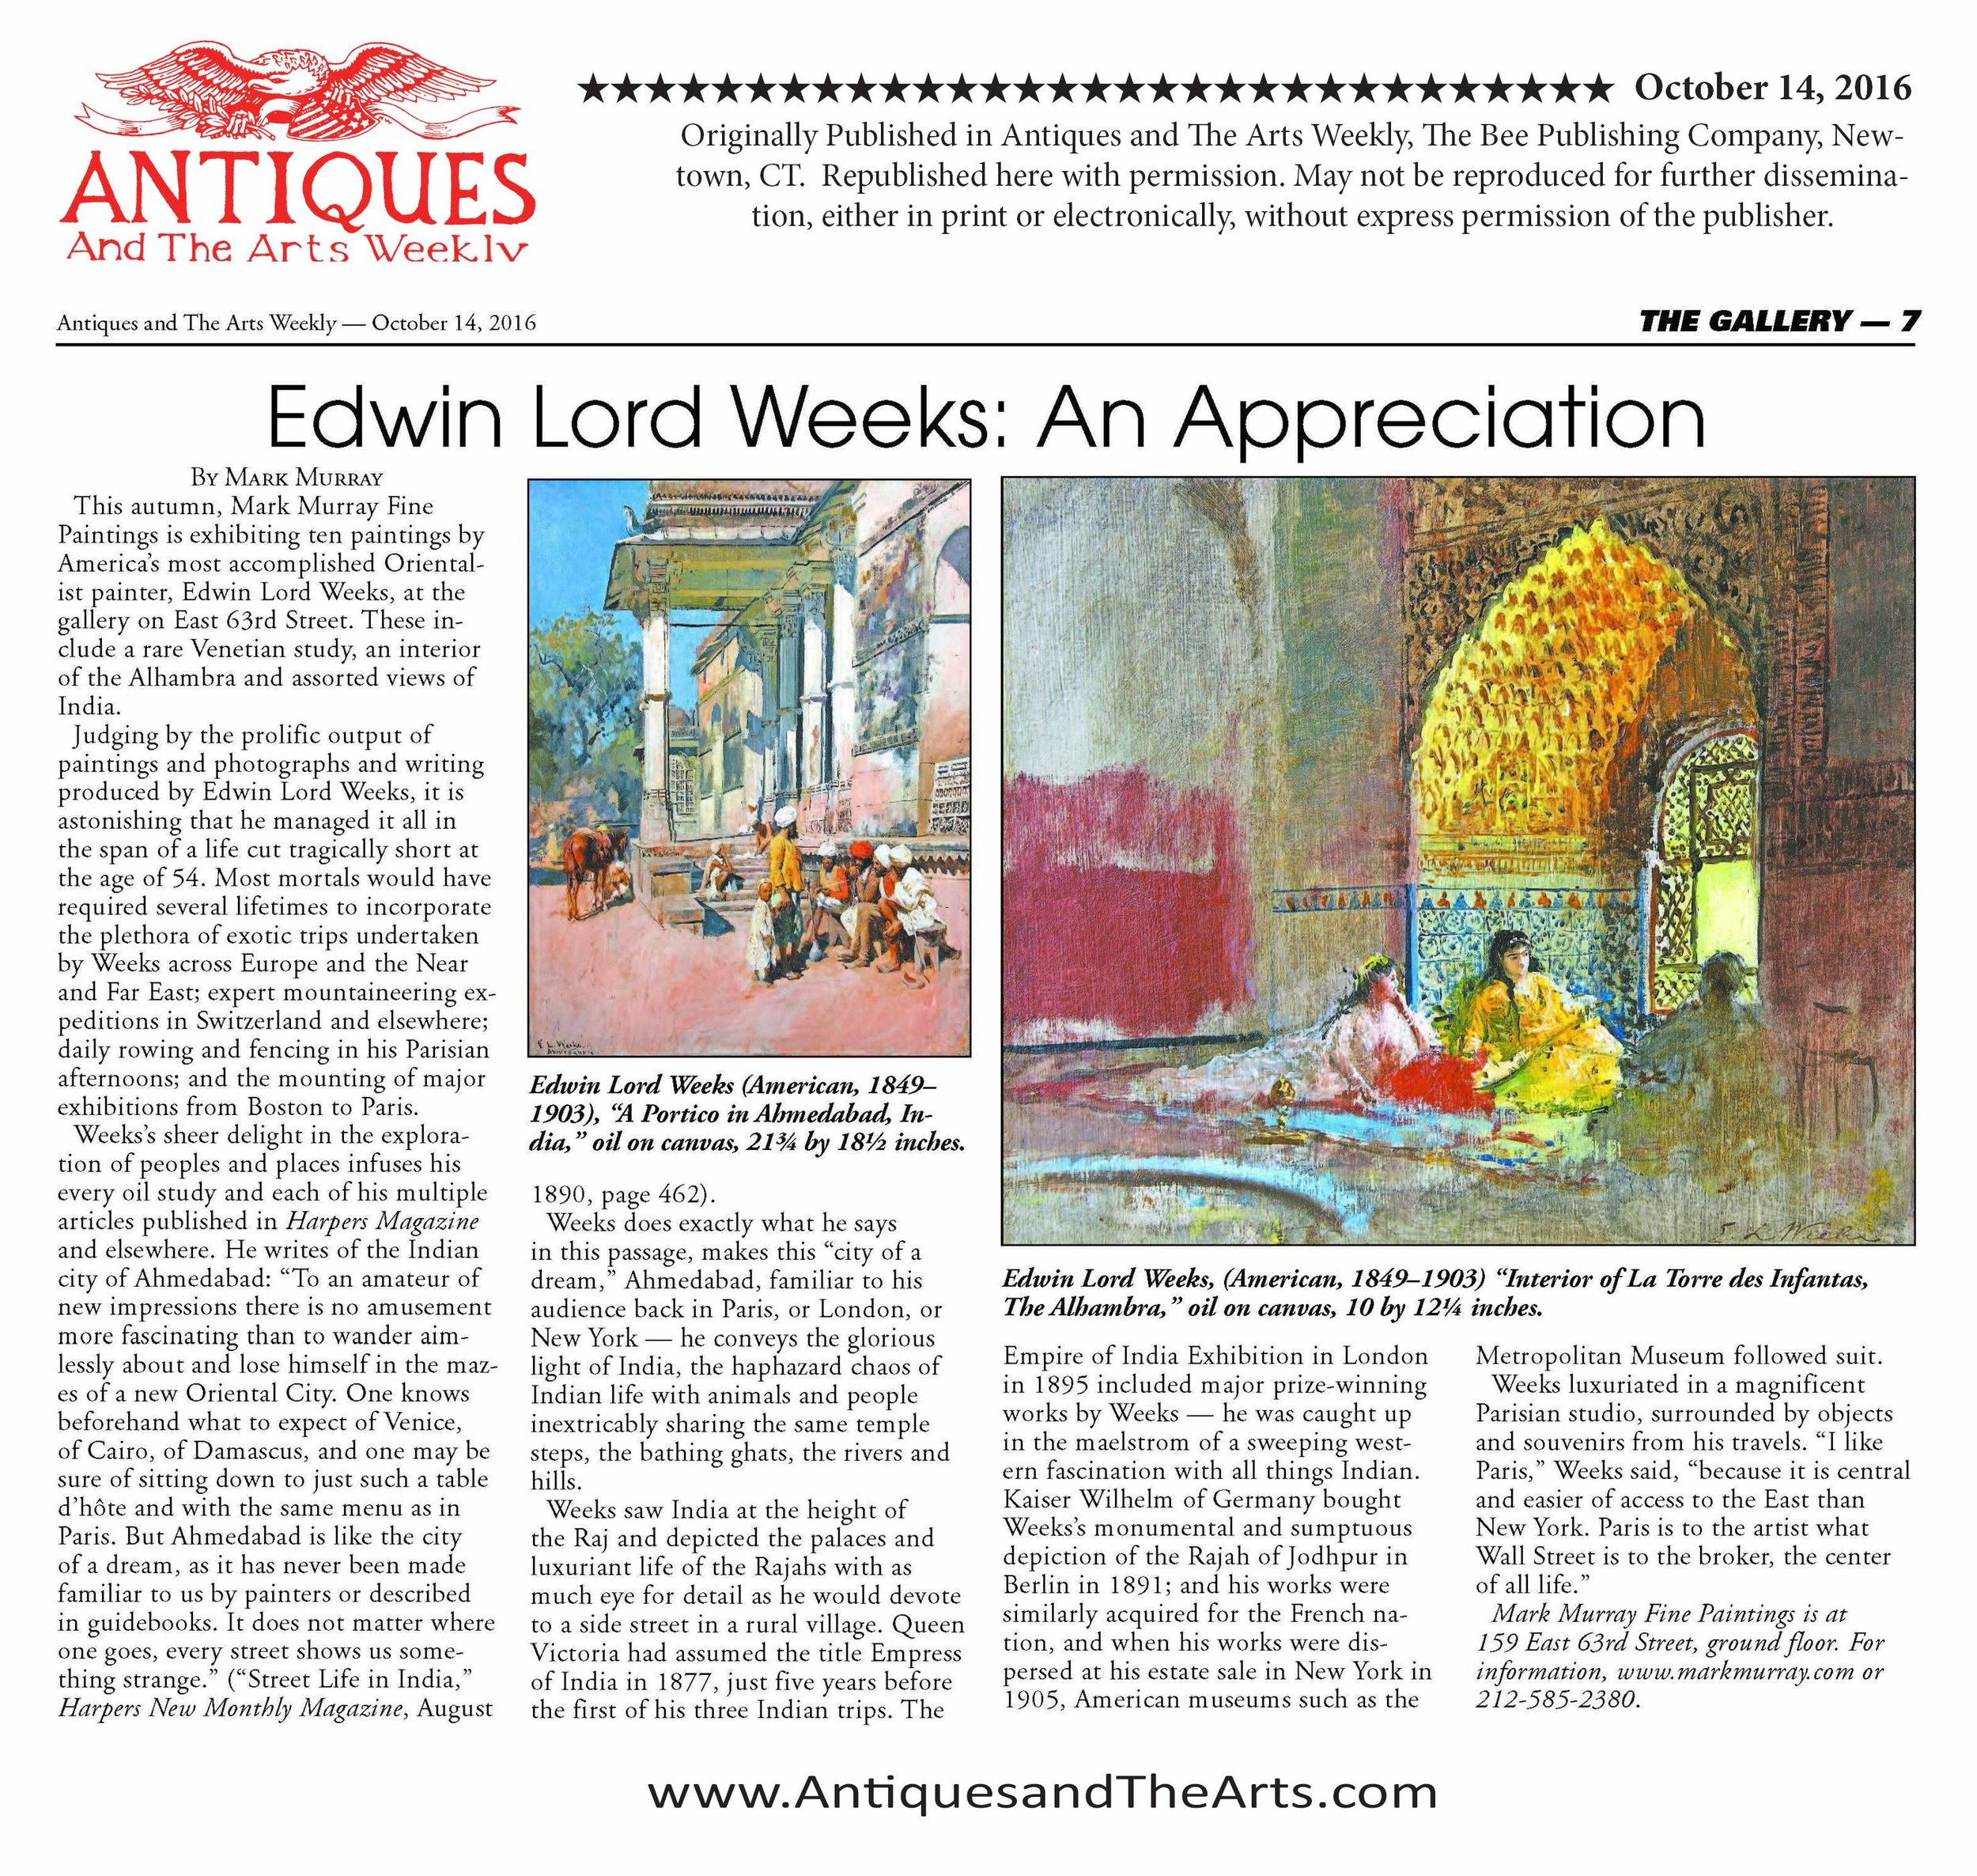 Antiques & the Arts Weekly 14 October 2016